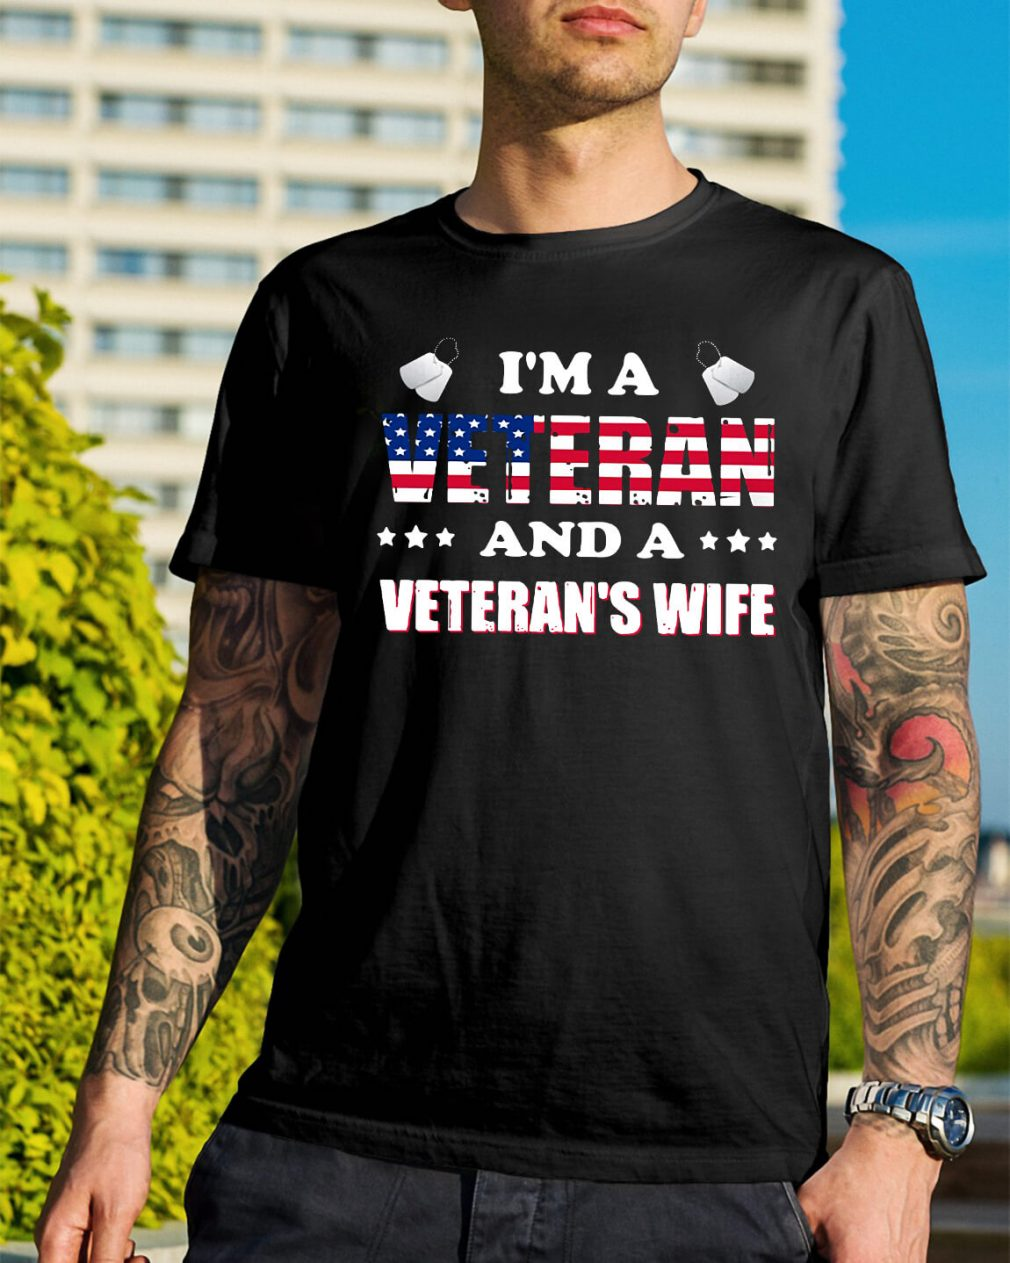 I'm a Veteran and a Veteran's wife shirt